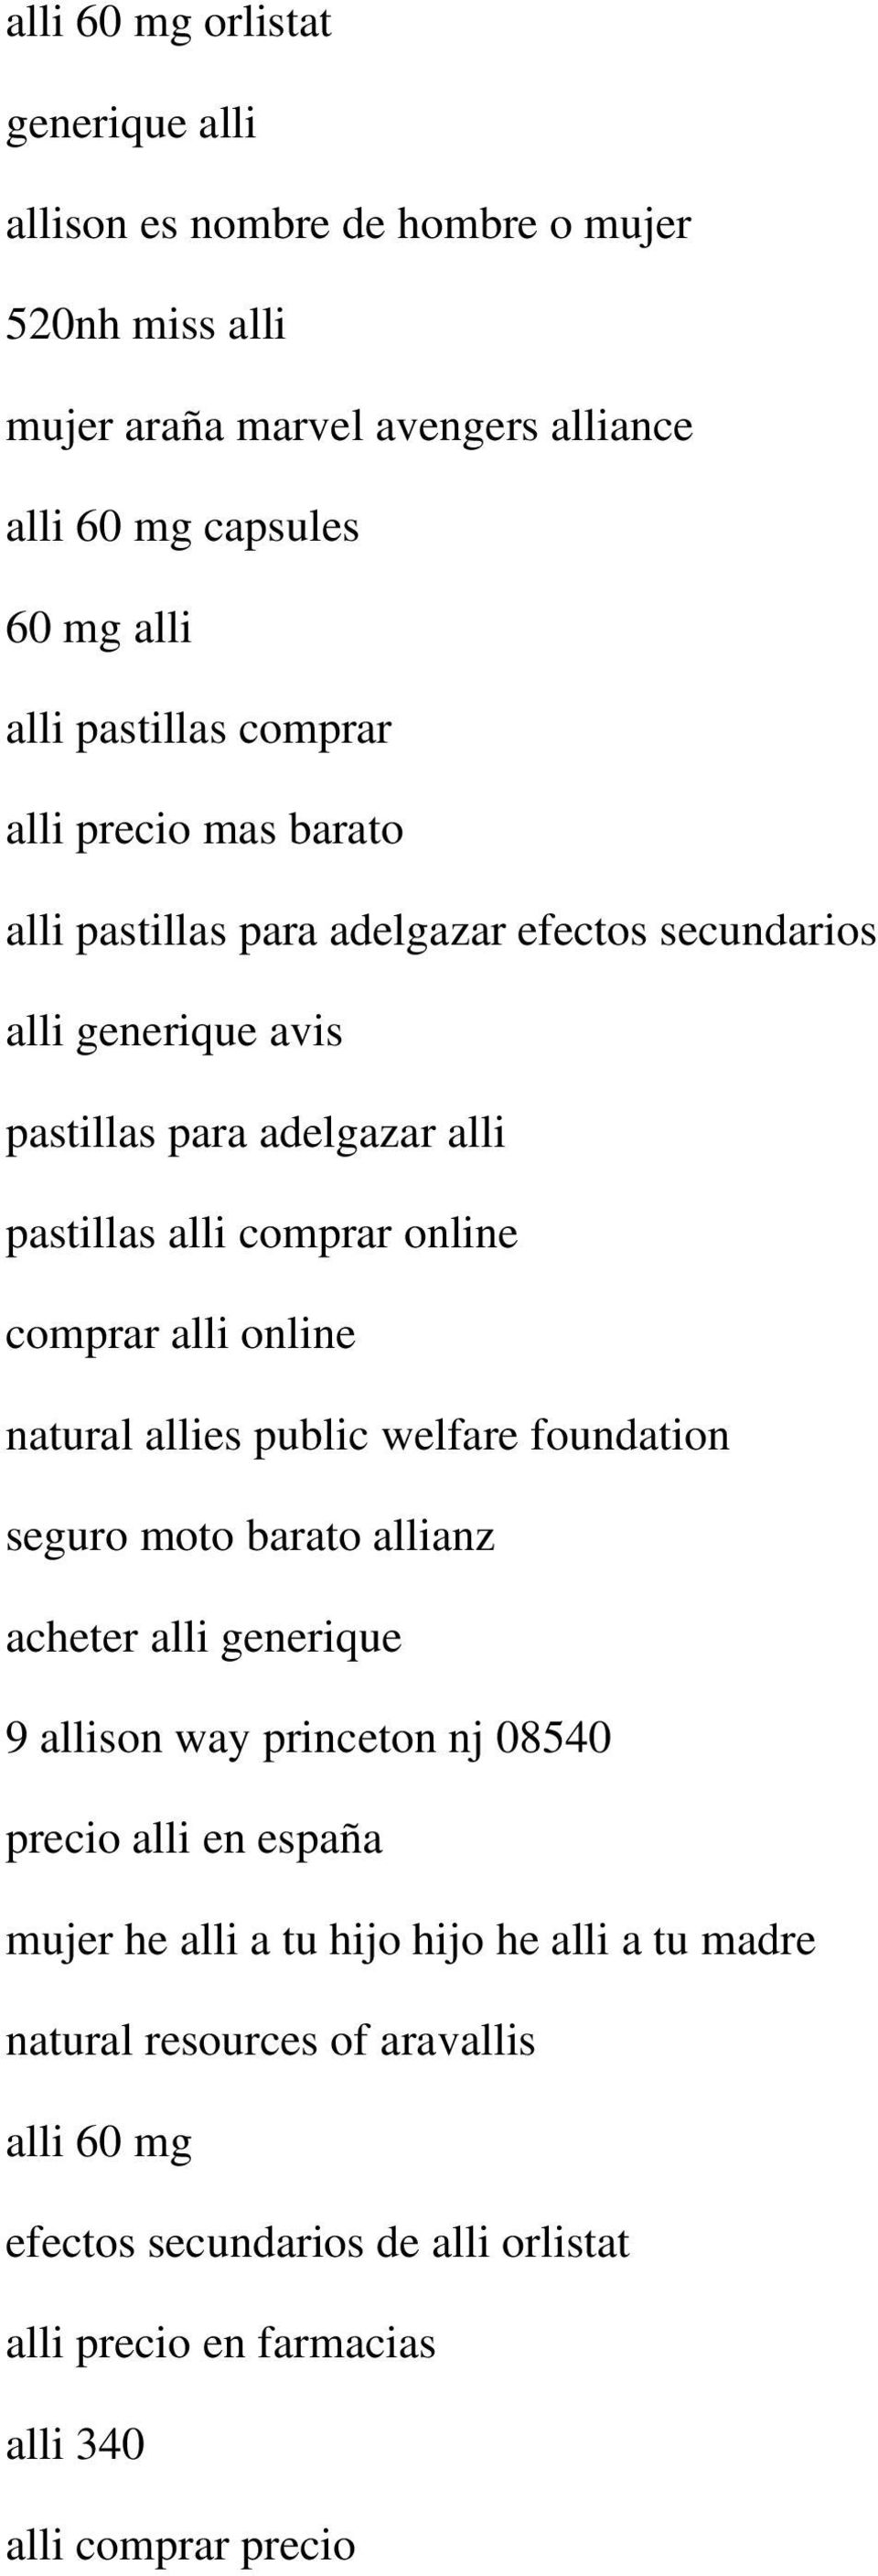 alli online natural allies public welfare foundation seguro moto barato allianz acheter alli generique 9 allison way princeton nj 08540 precio alli en españa mujer he